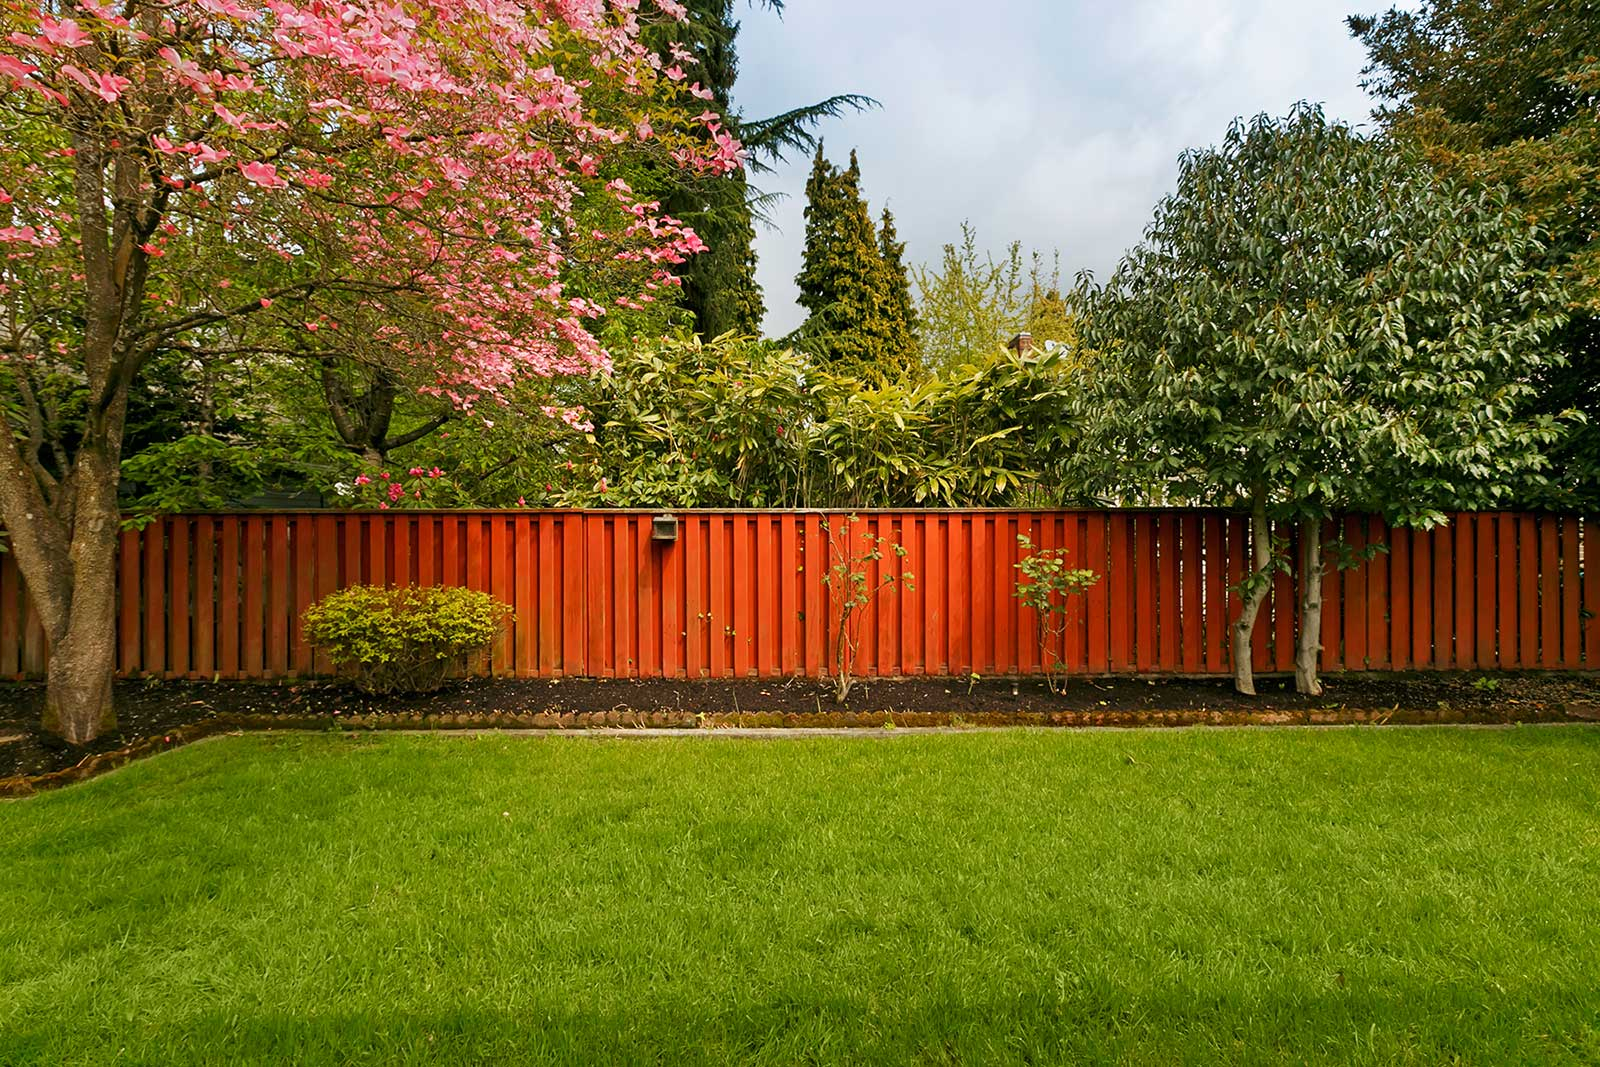 Best Types Of Wood Fencing Sarasota Foremost Fence inside 11 Genius Ideas How to Make Types Of Wood Fences For Backyard